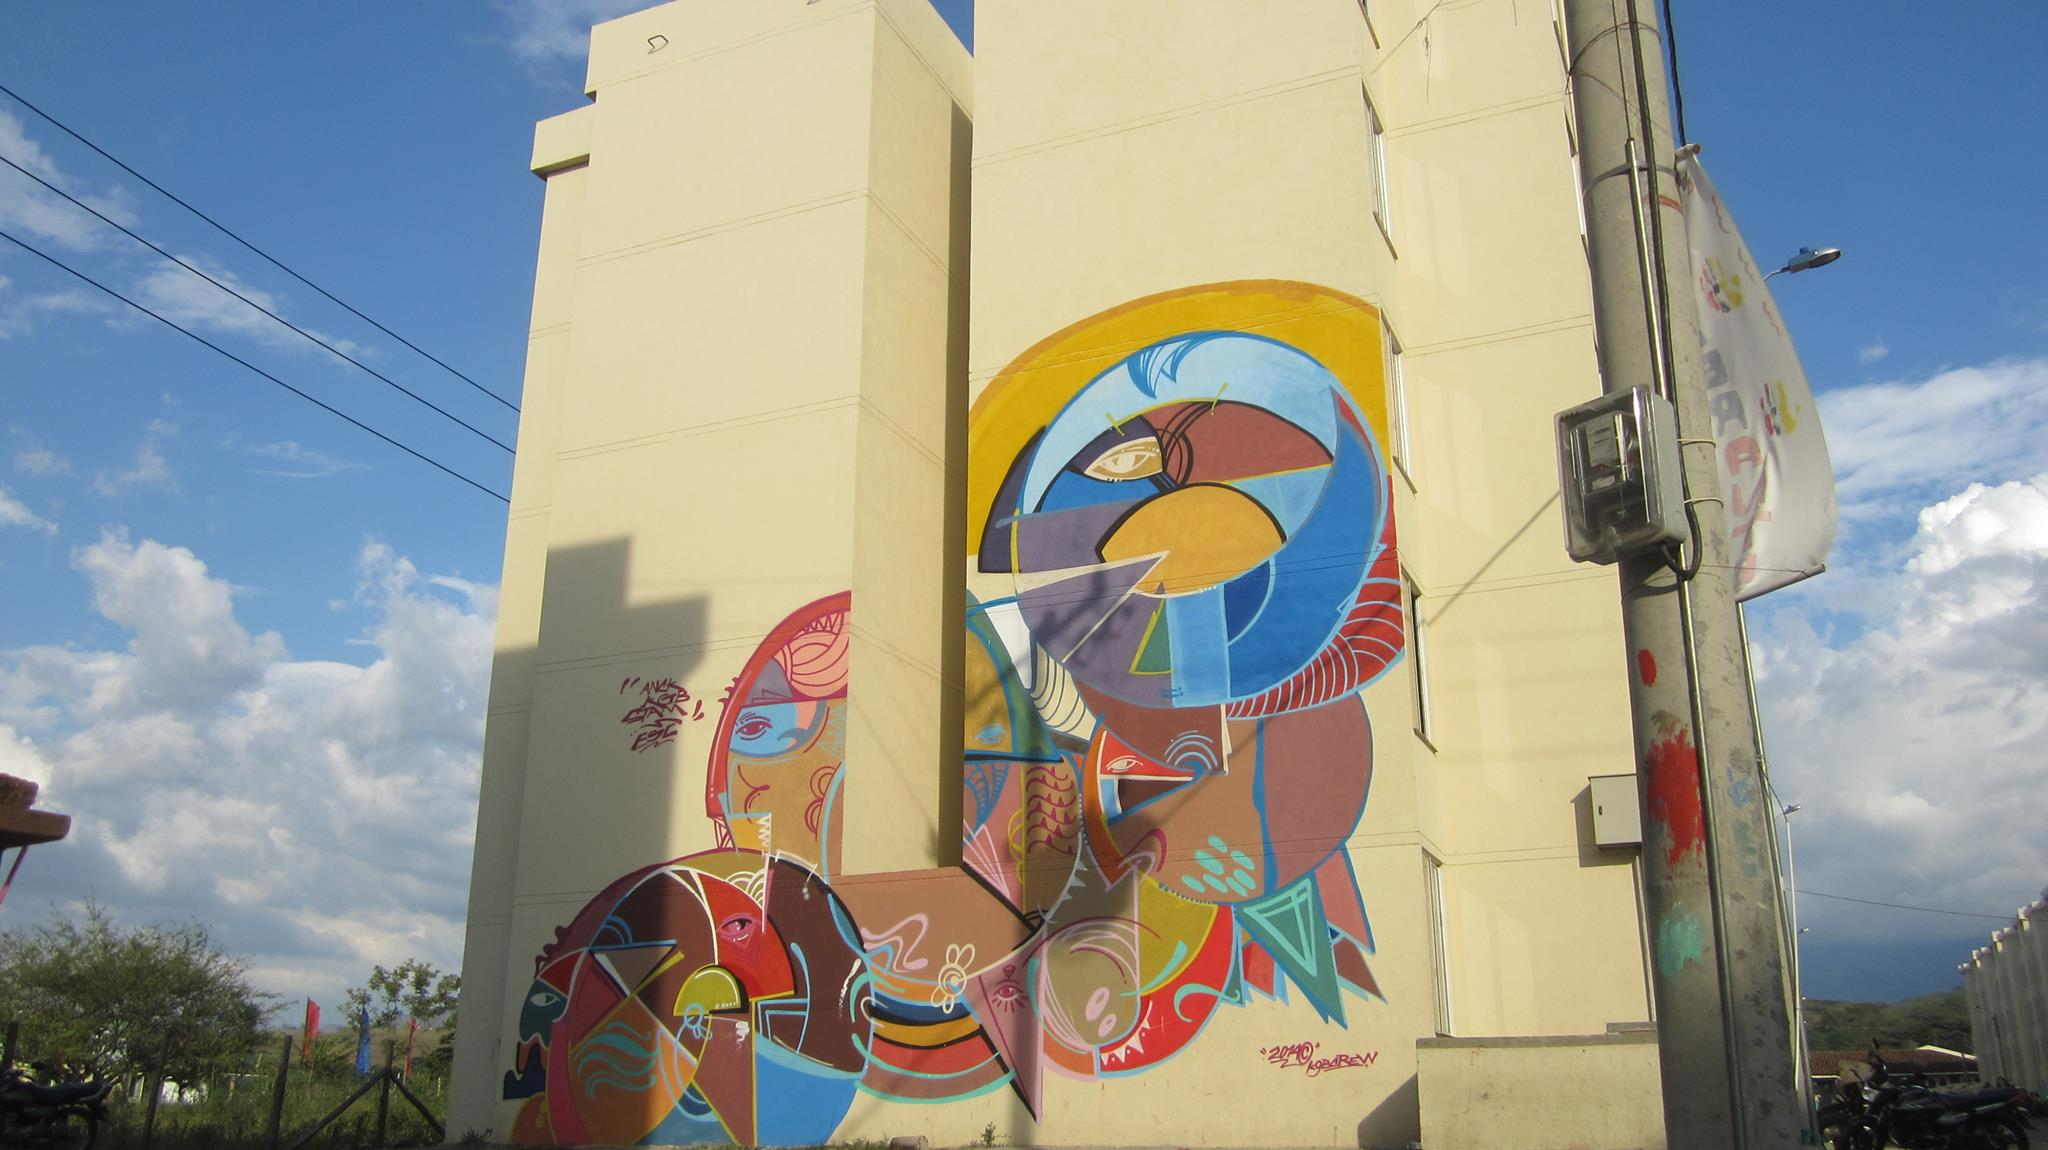 Geometric shapes create illusions of human faces in this large ... for Street Wall Art Illusions  589ifm